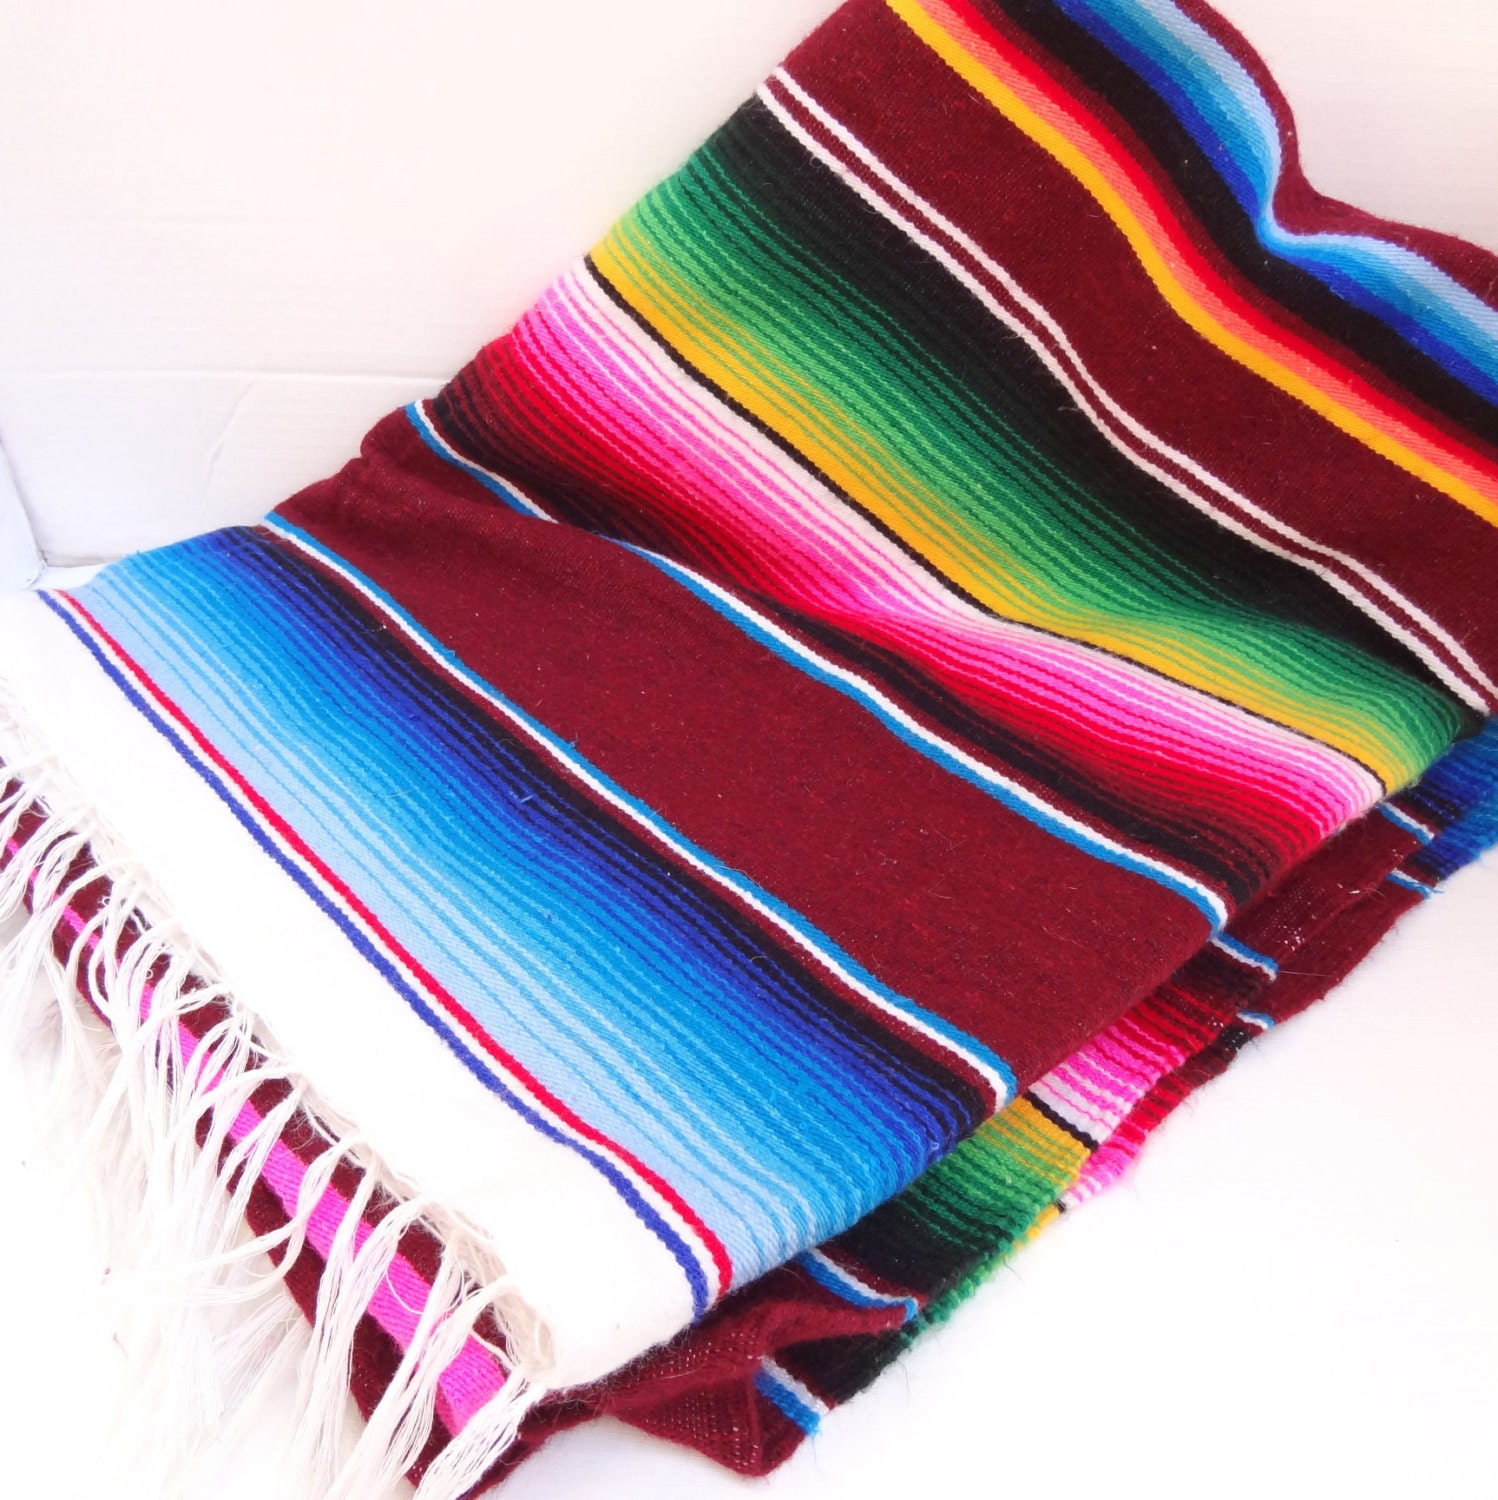 How to wash Mexican blanket.How to wash Mexican blanket.How to Clean a Mexican Cotton Blanket|How to wash Mexican blanket.How to wash Mexican blanket.How to Clean a Mexican Cotton Blanket|eHowSee More